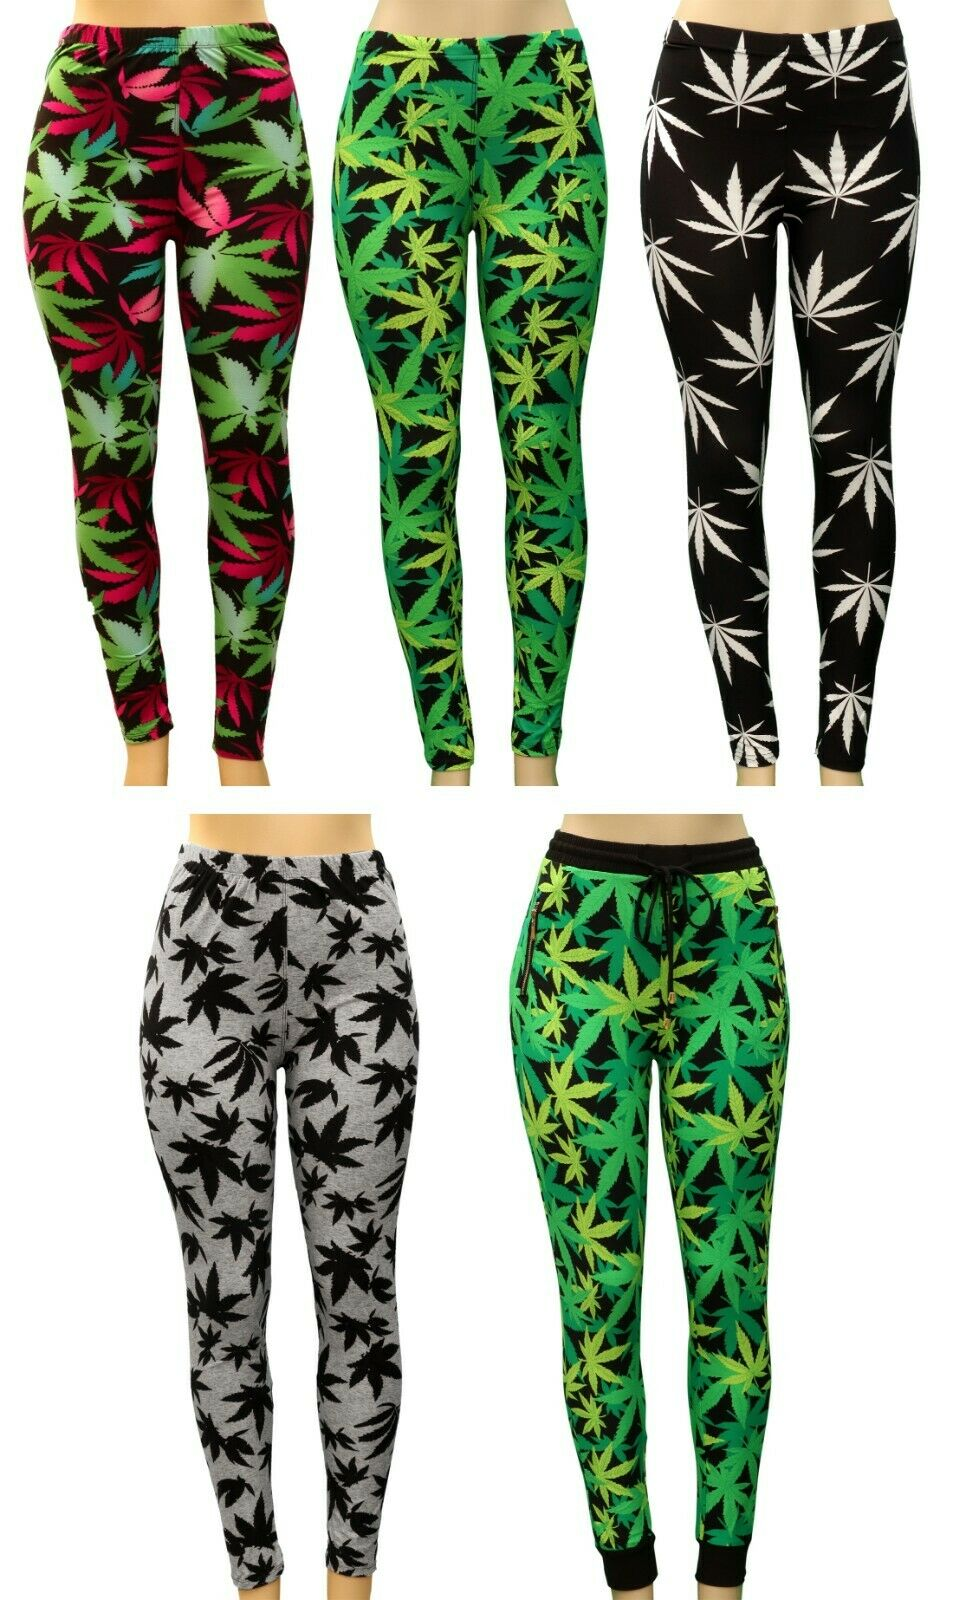 Women Plant Hemp Weeds Marijuana LUCKY Maple Leaf Punk Skinny Stretch Leggings Clothing, Shoes & Accessories